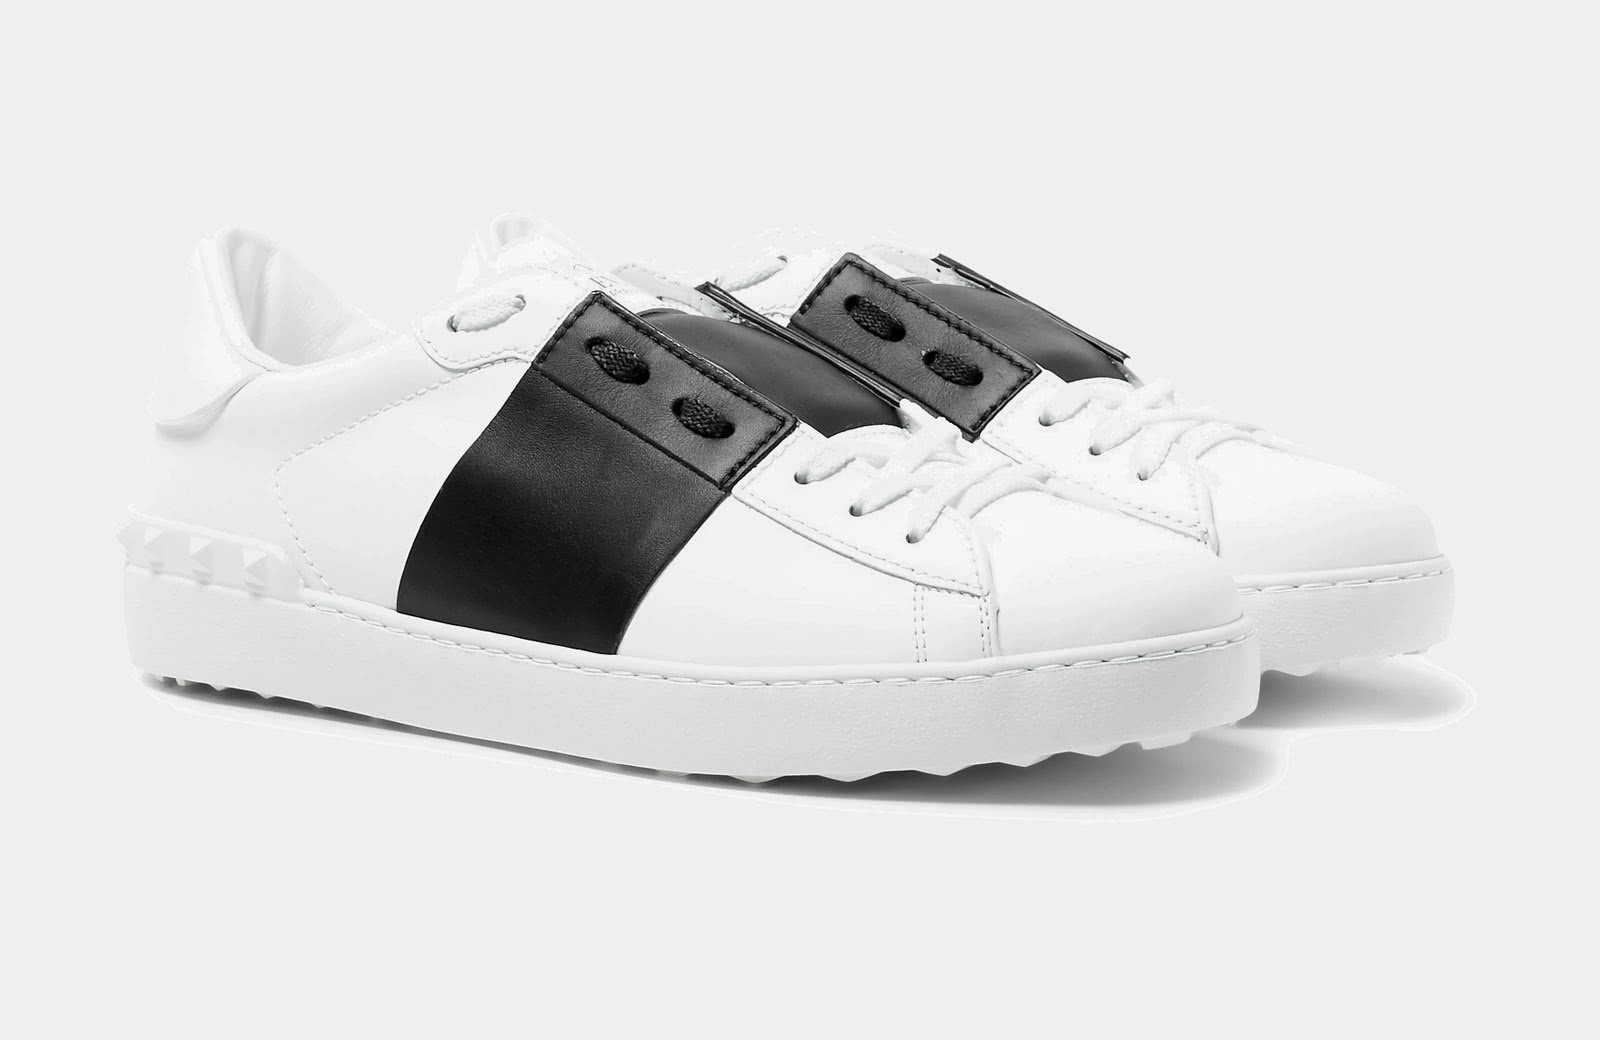 2e79999024a1 best black and white sneaker men Valentino Garavani luxury style - Luxe  Digital